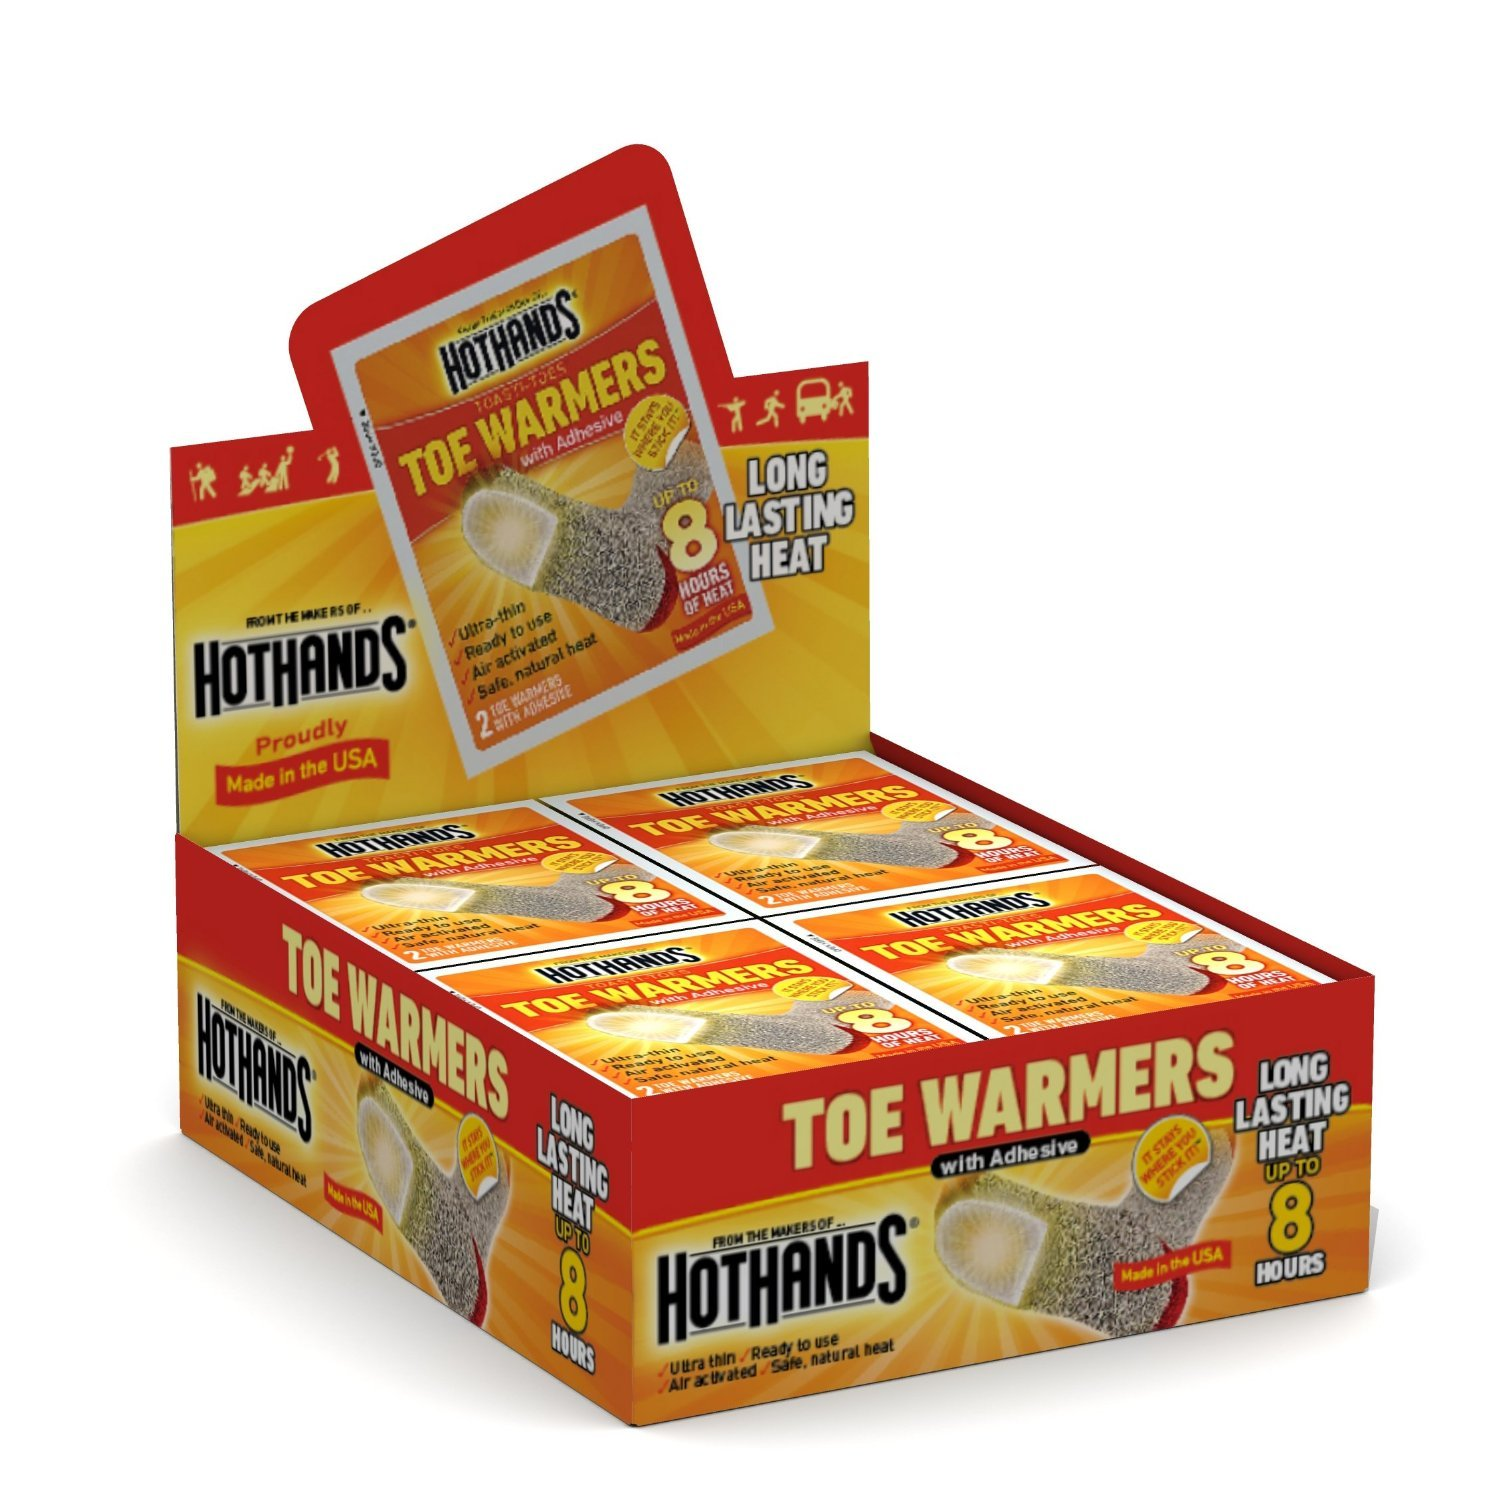 HotHands Toe Warmers (Brand New 2015 Stock) 80 Pair Mega Pack by HotHands (Image #1)